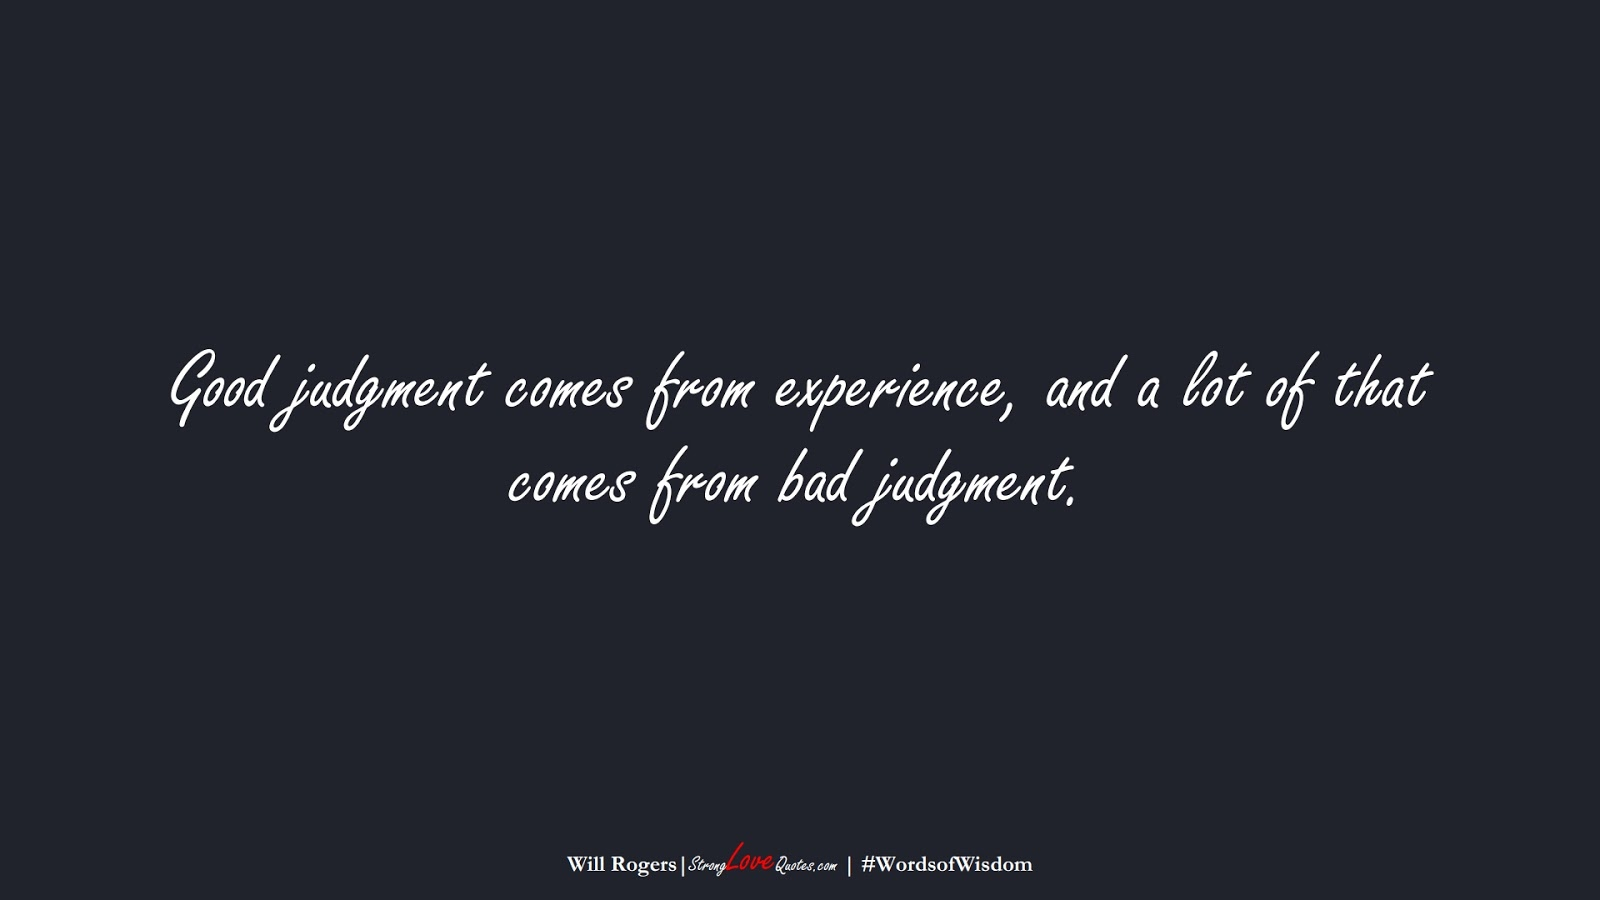 Good judgment comes from experience, and a lot of that comes from bad judgment. (Will Rogers);  #WordsofWisdom